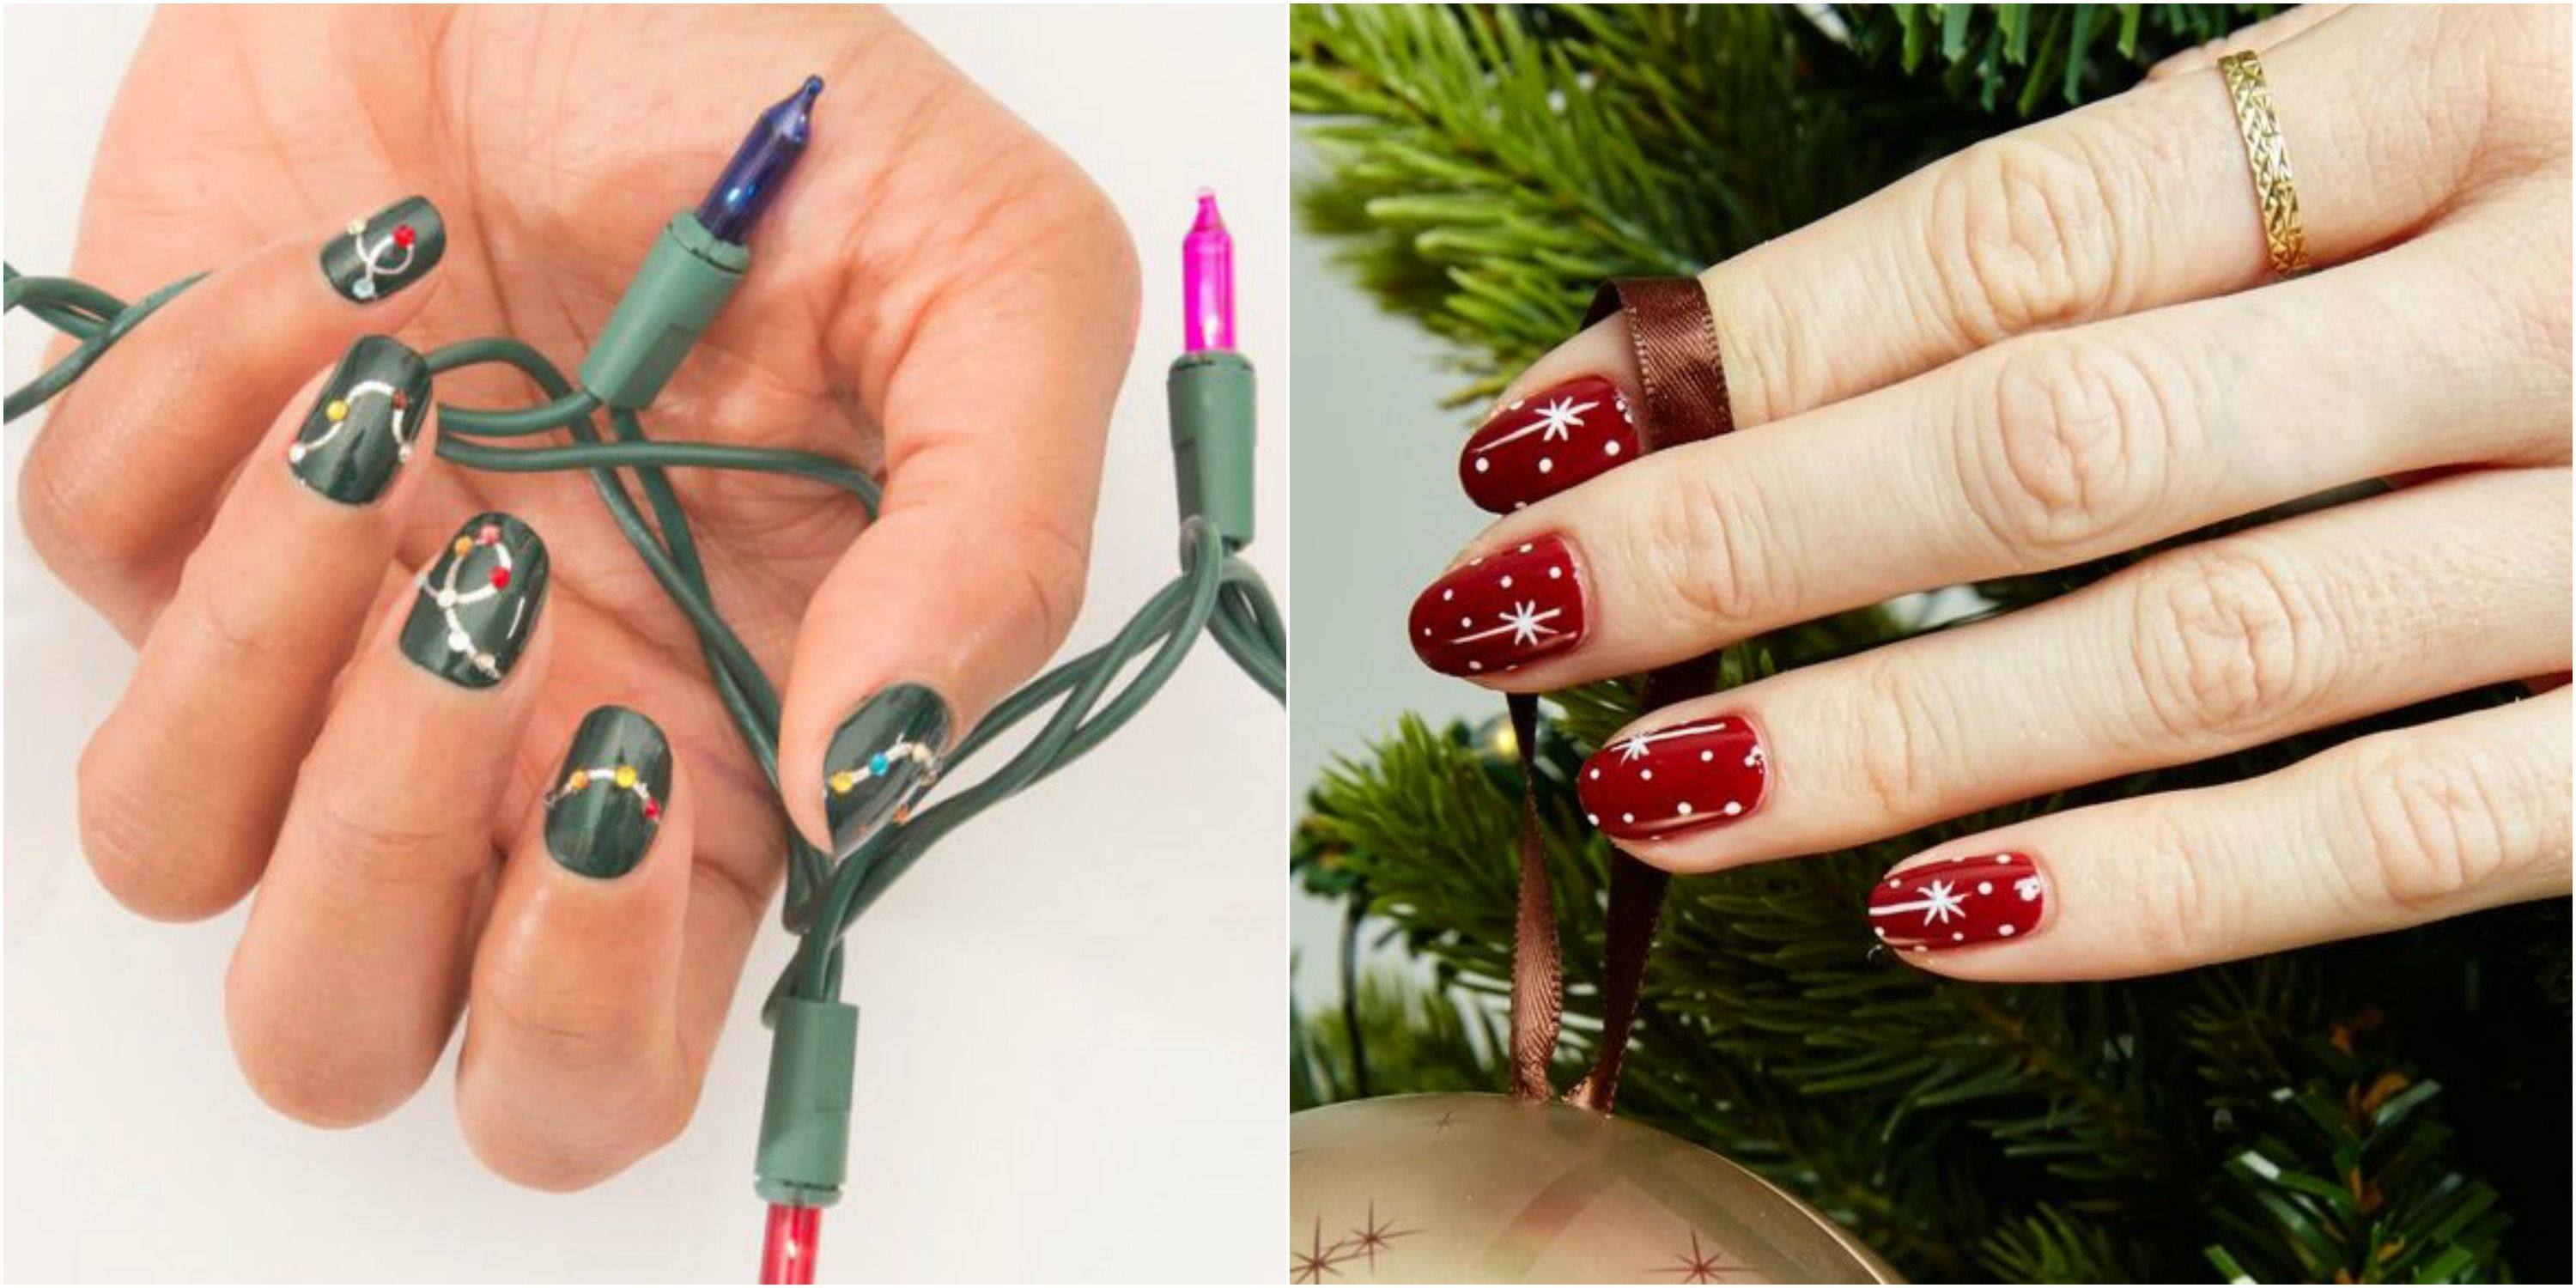 32 festive christmas nail art ideas easy designs for holiday nails solutioingenieria Image collections